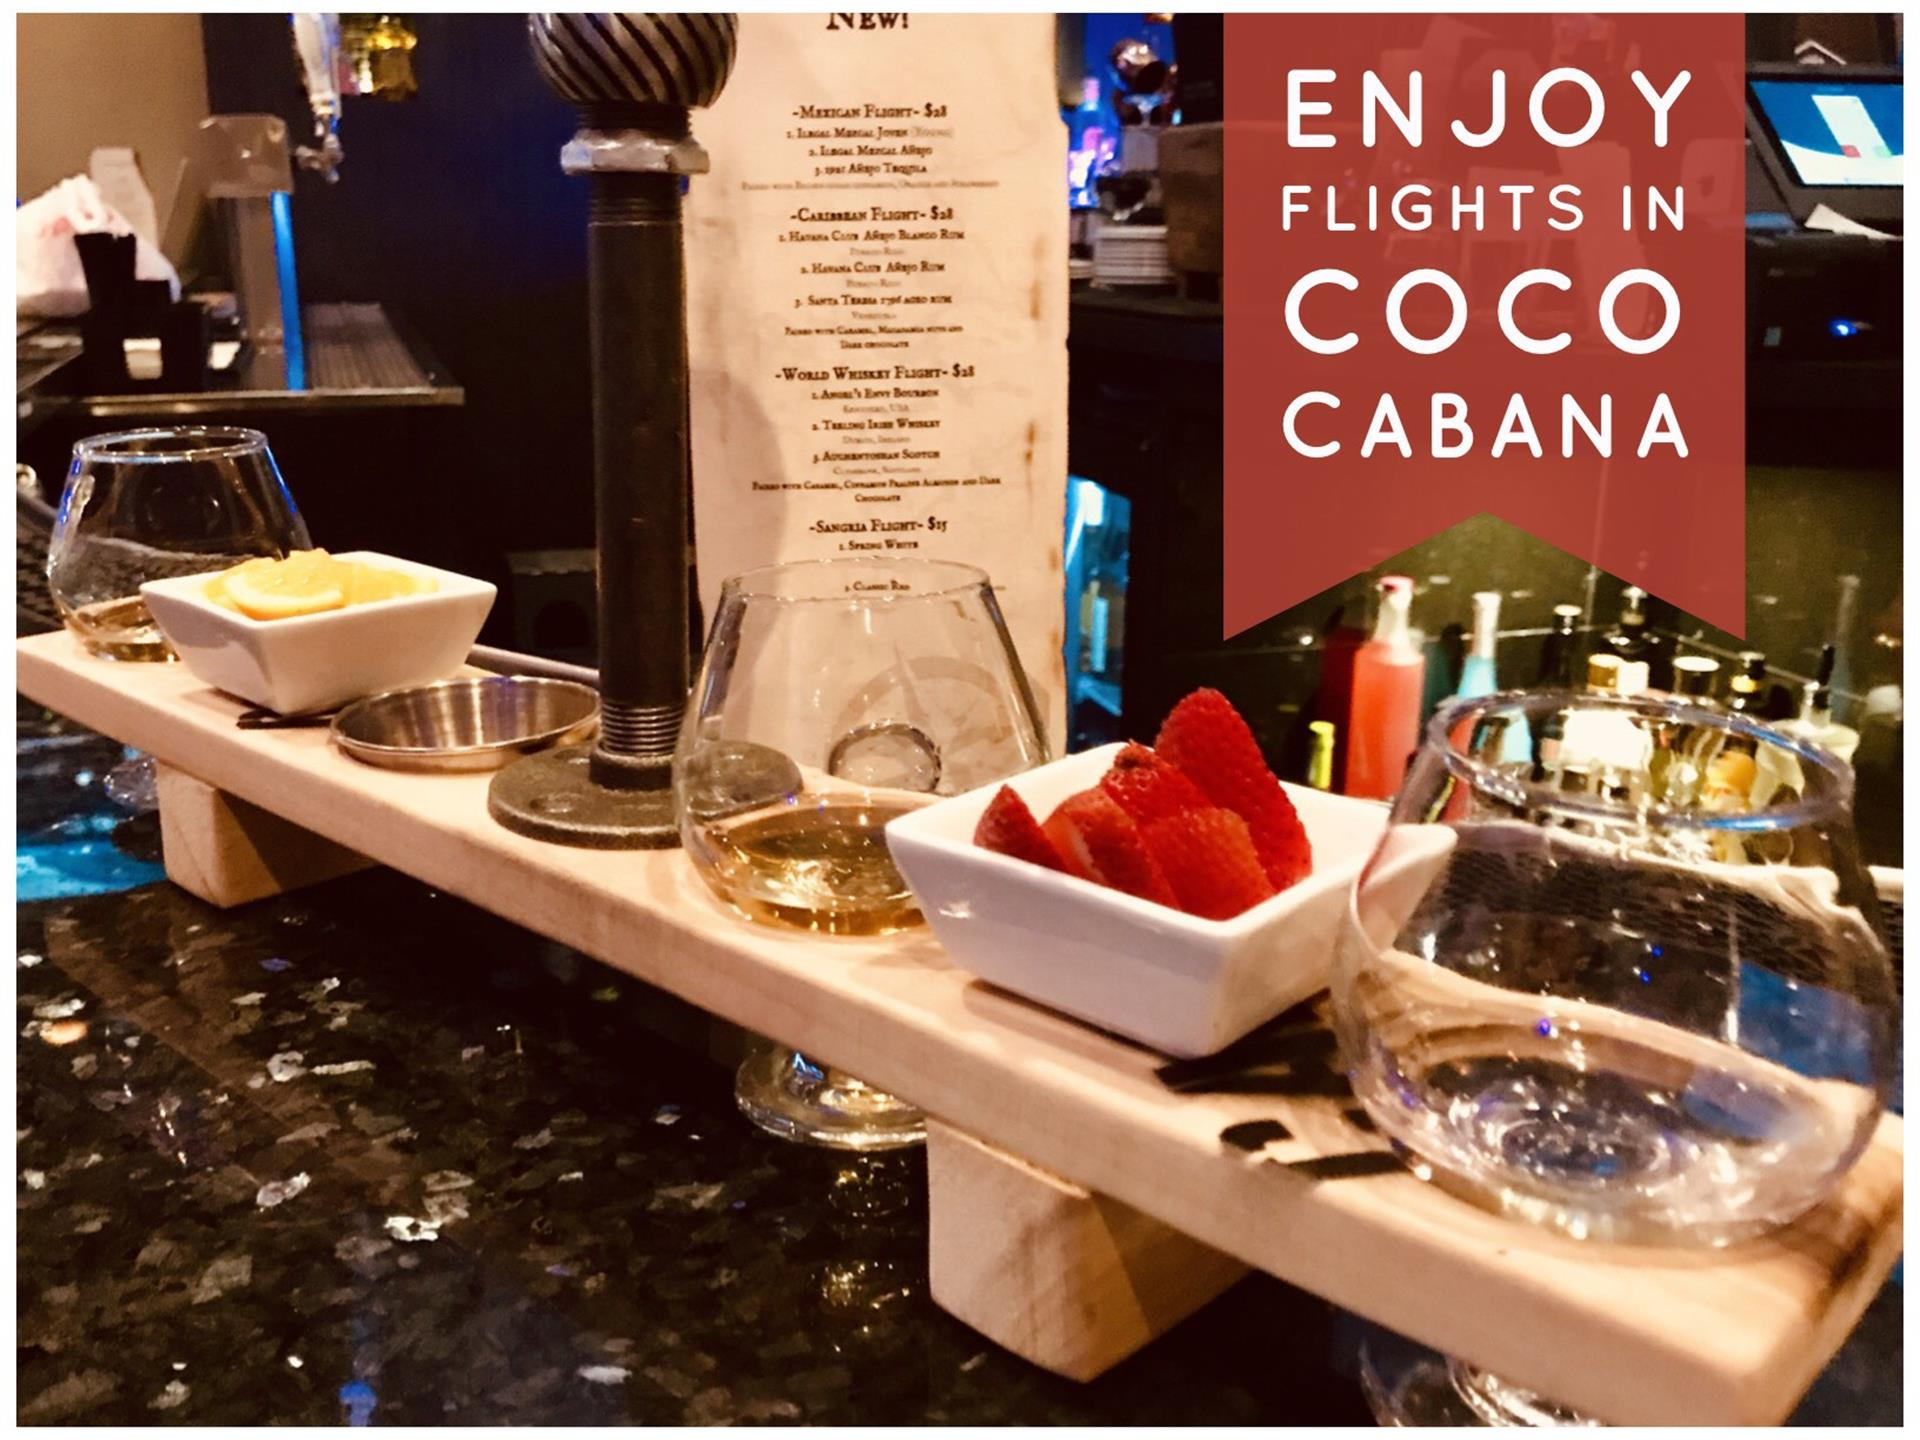 Enjoy Flights in Coco Cabana